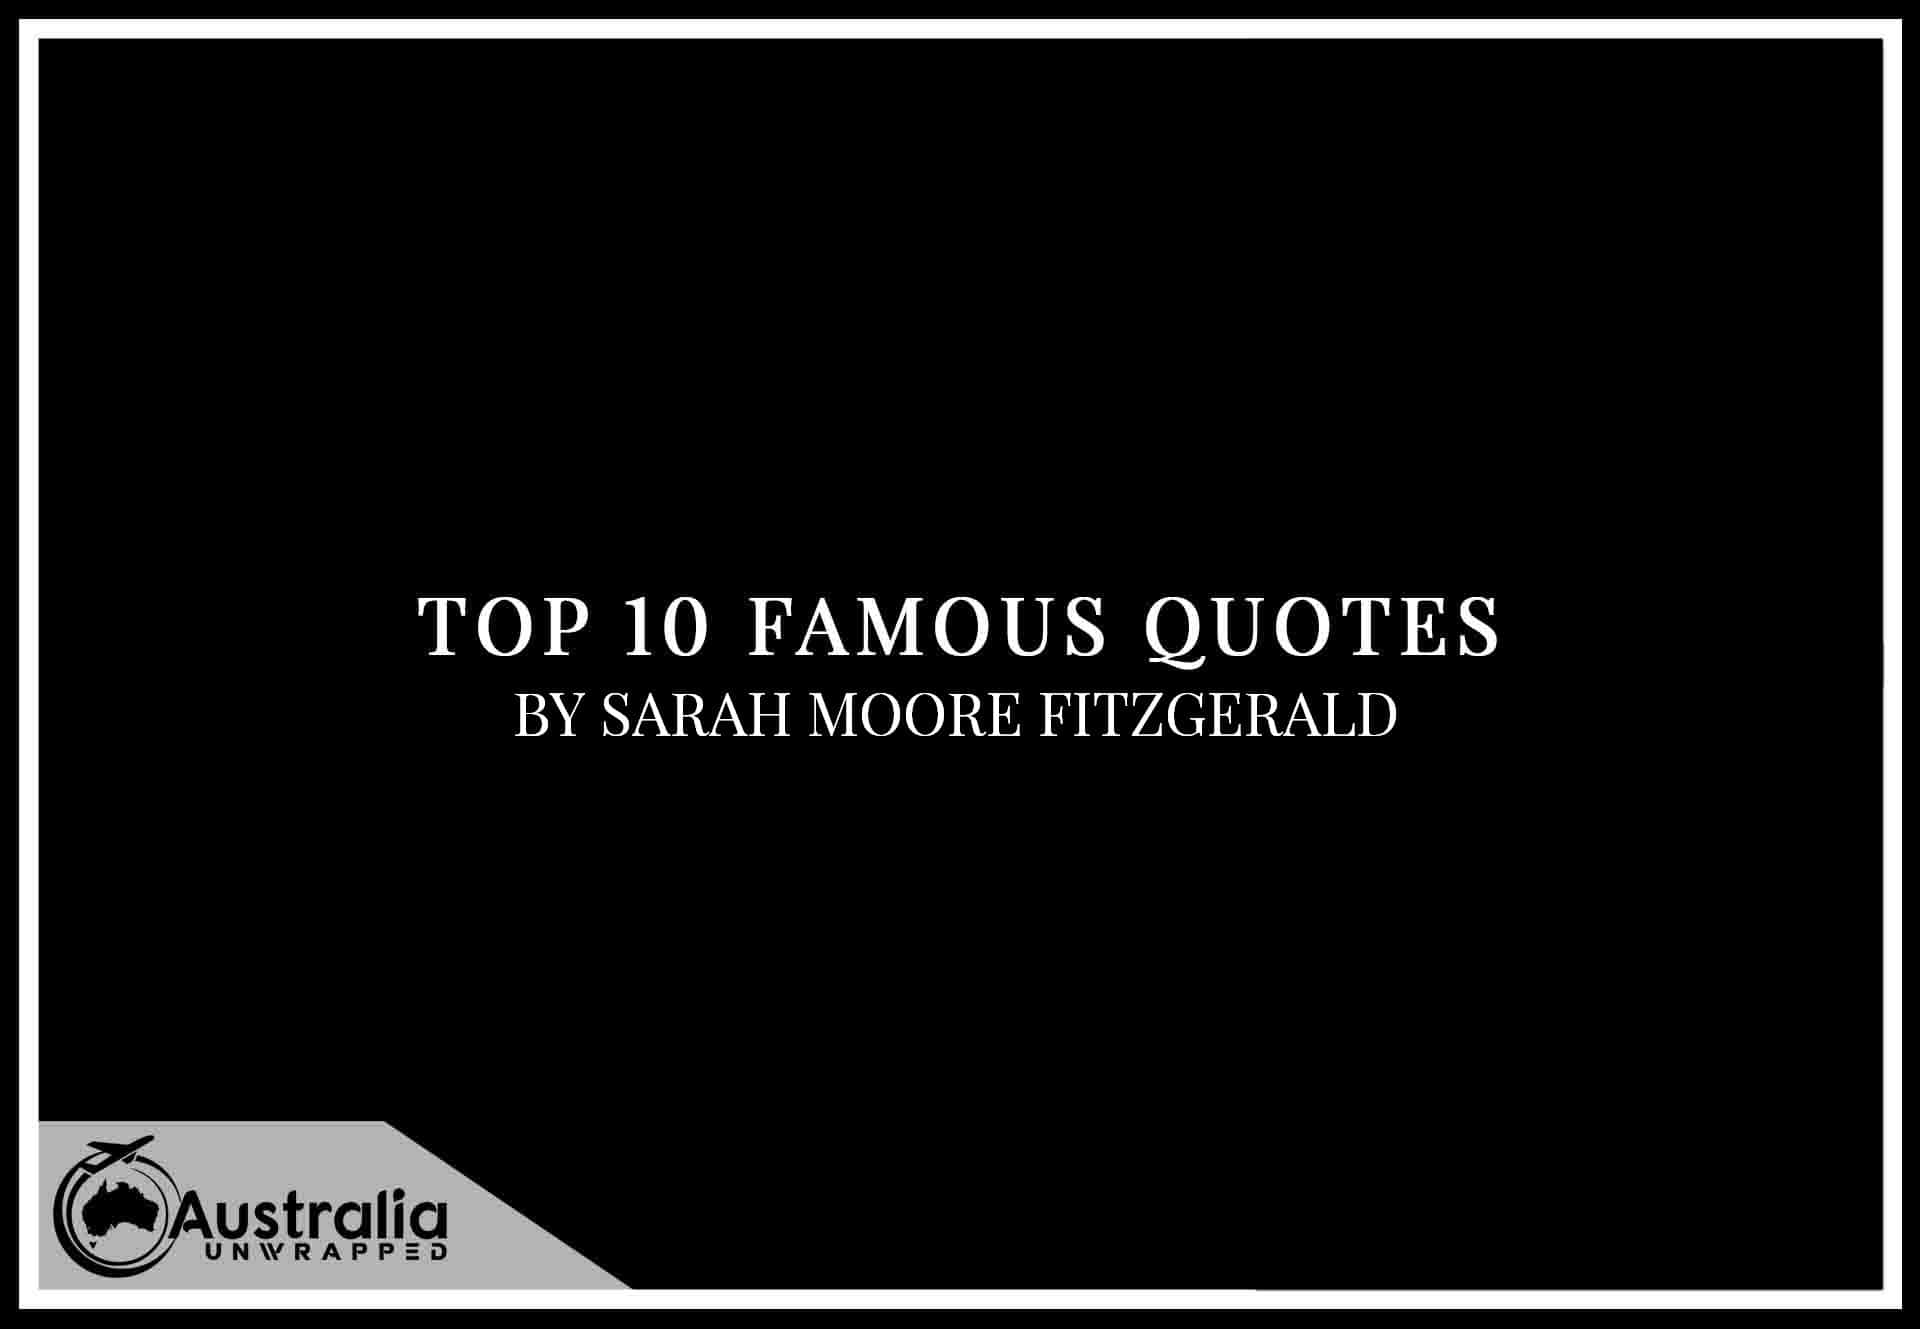 Top 10 Famous Quotes by Author Sarah Moore Fitzgerald